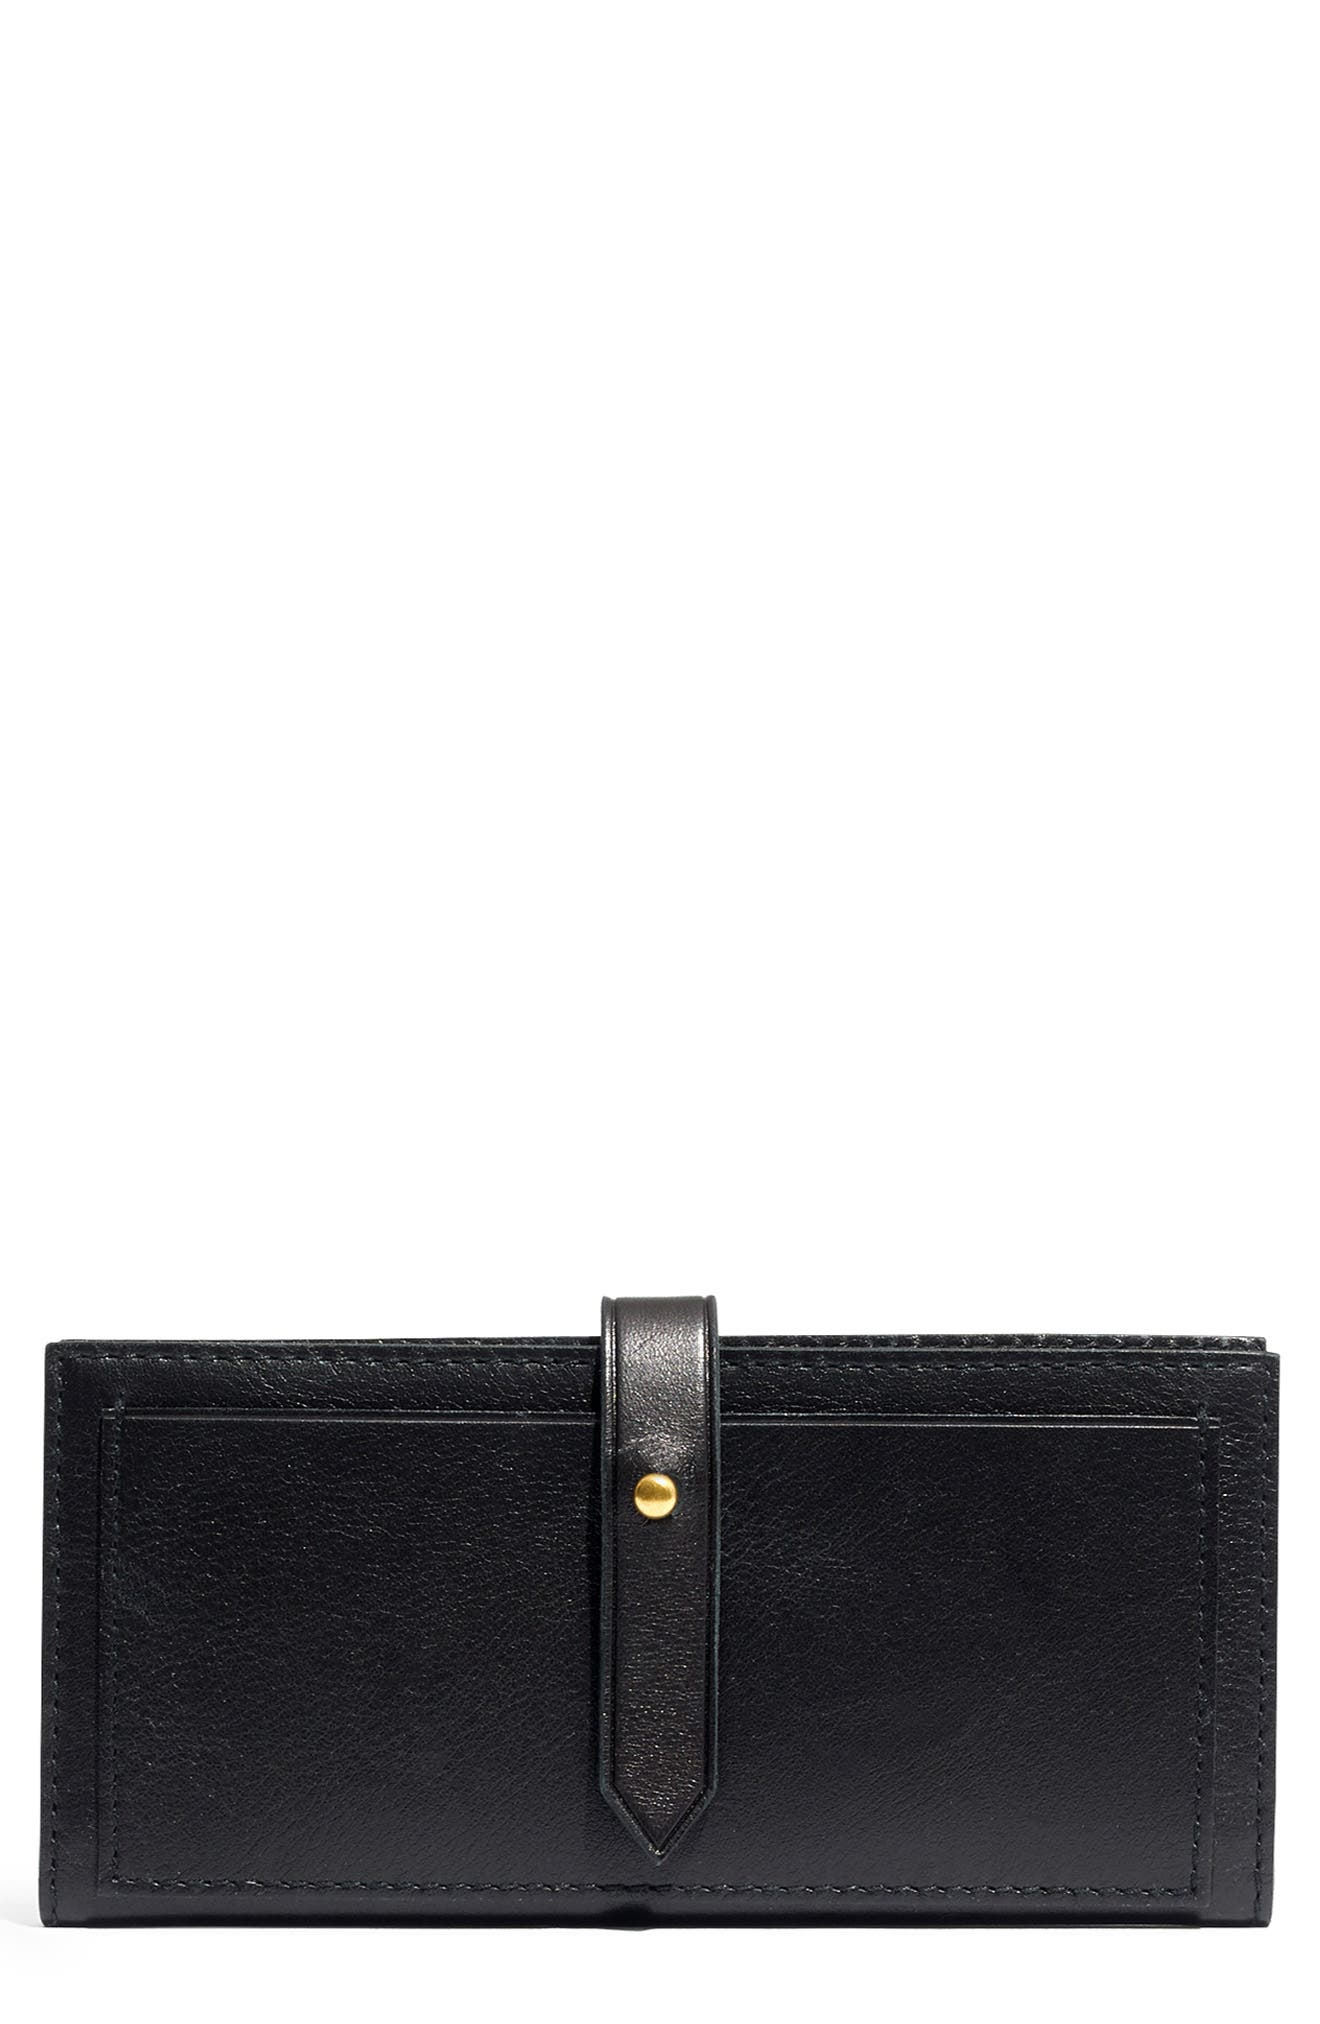 New Post Leather Wallet,                         Main,                         color, TRUE BLACK